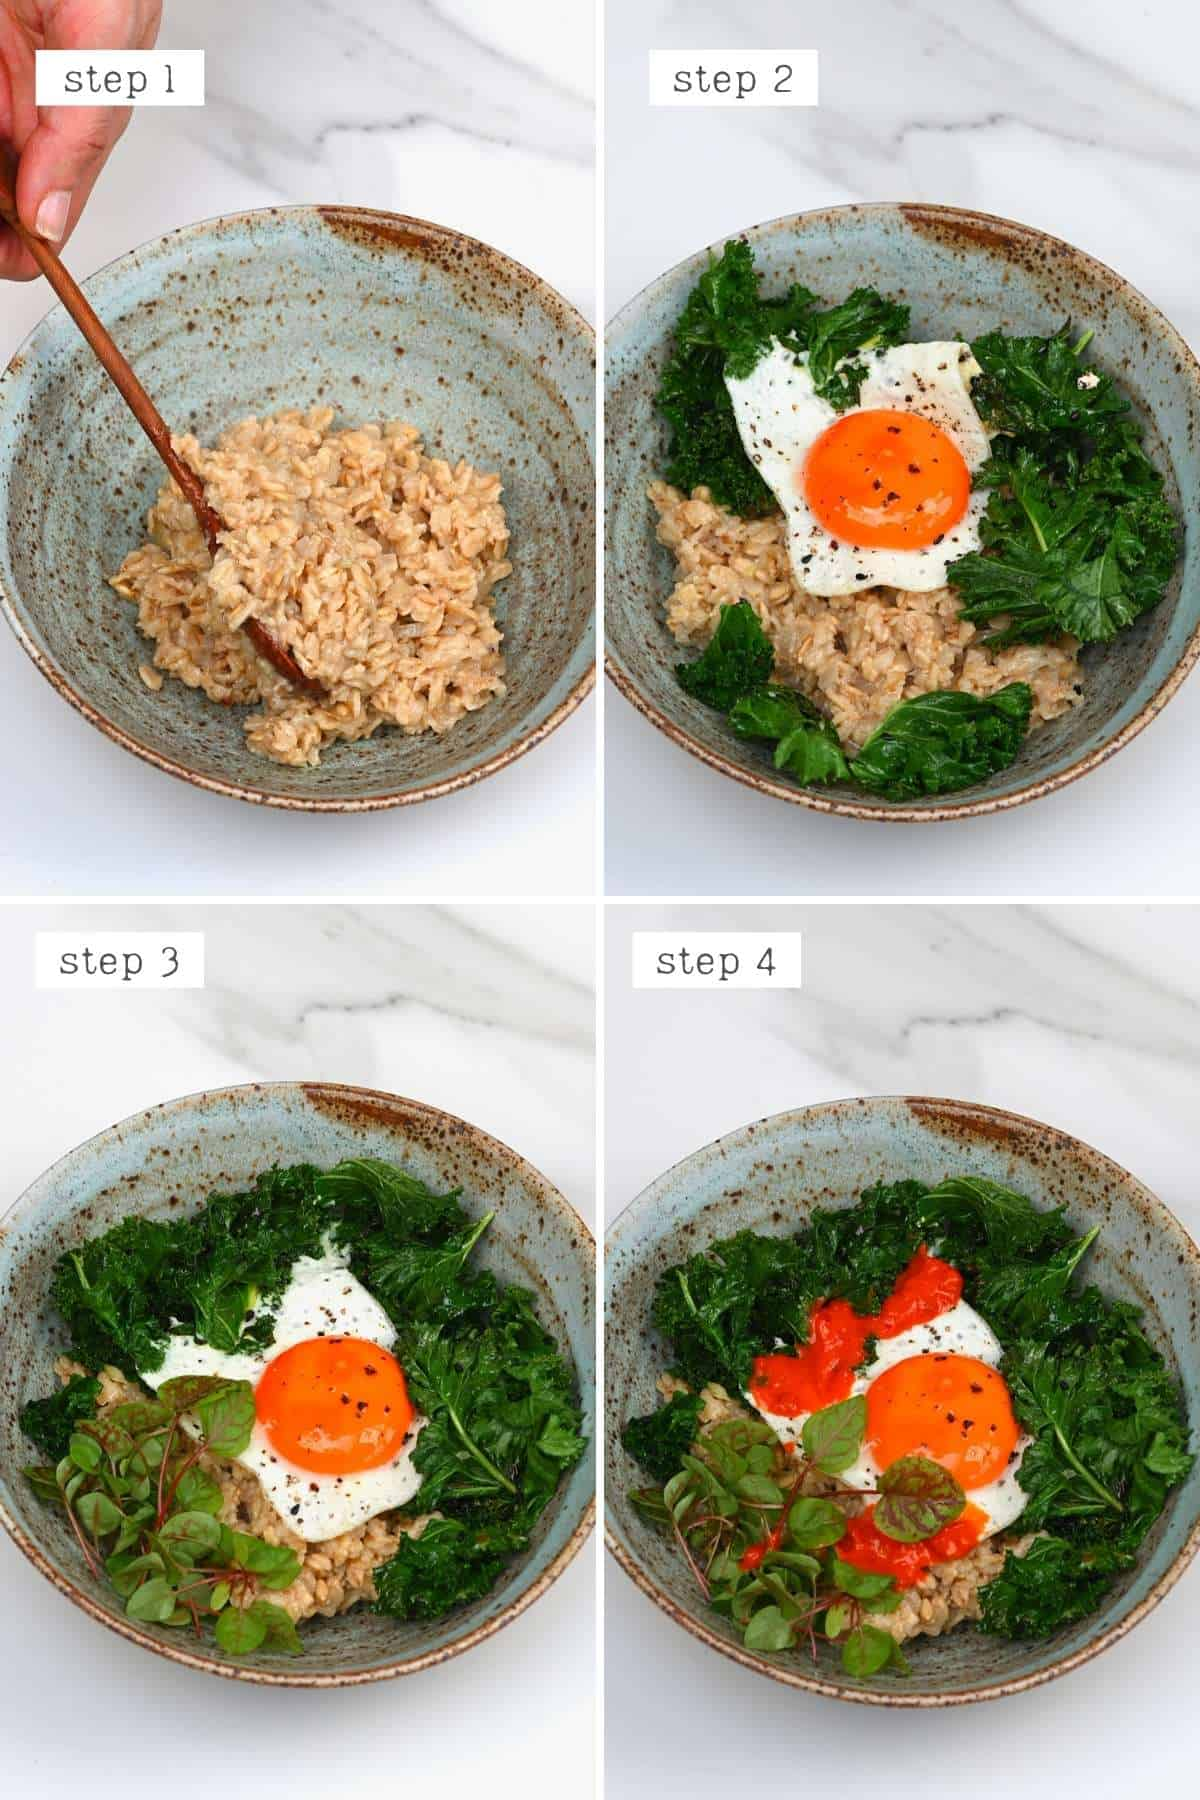 Steps for preparing egg oatmeal